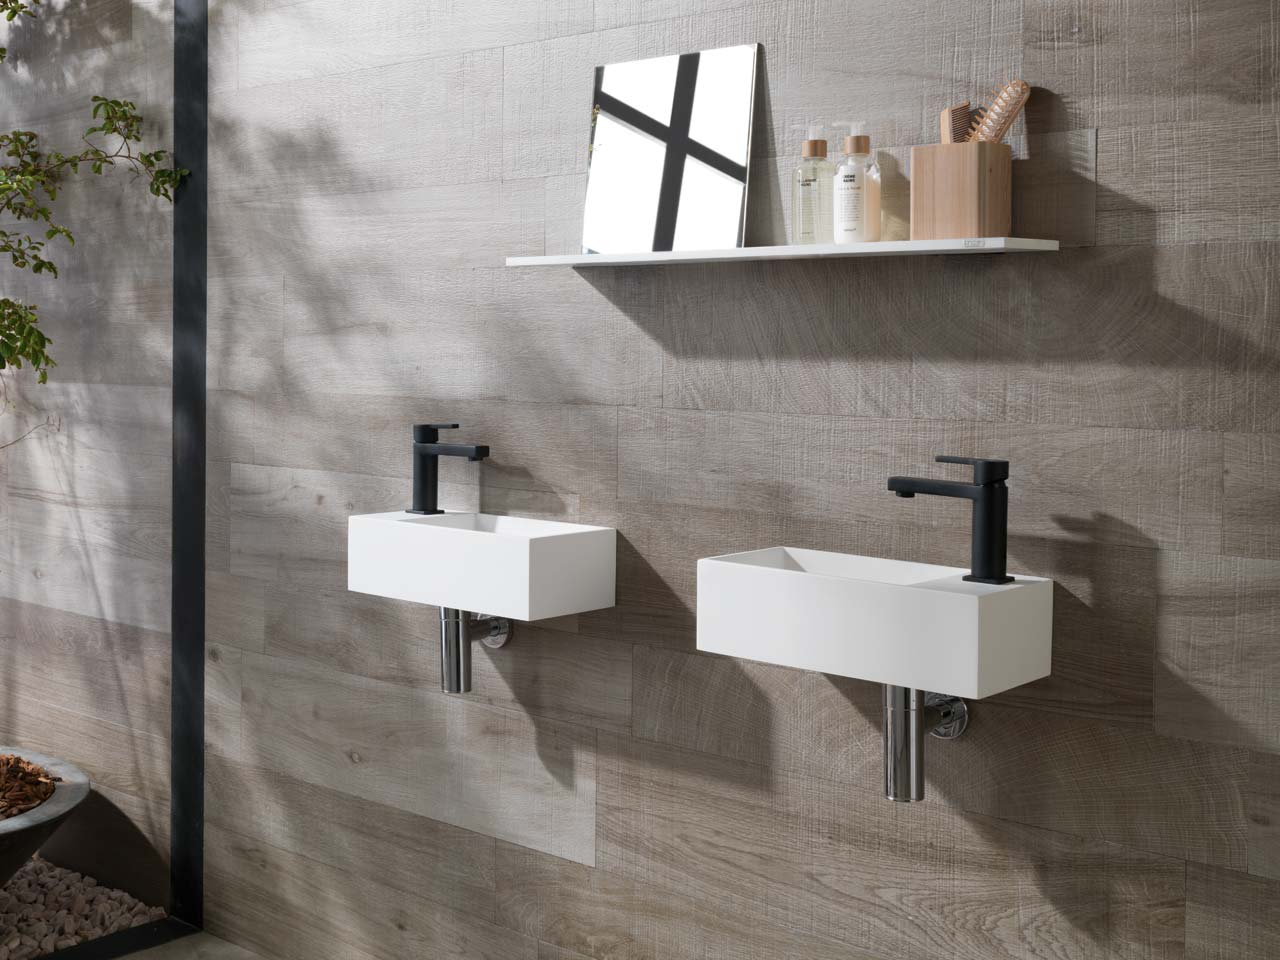 Lavabo Krion Porcelanosa Bathrooms Spacers Showrooms